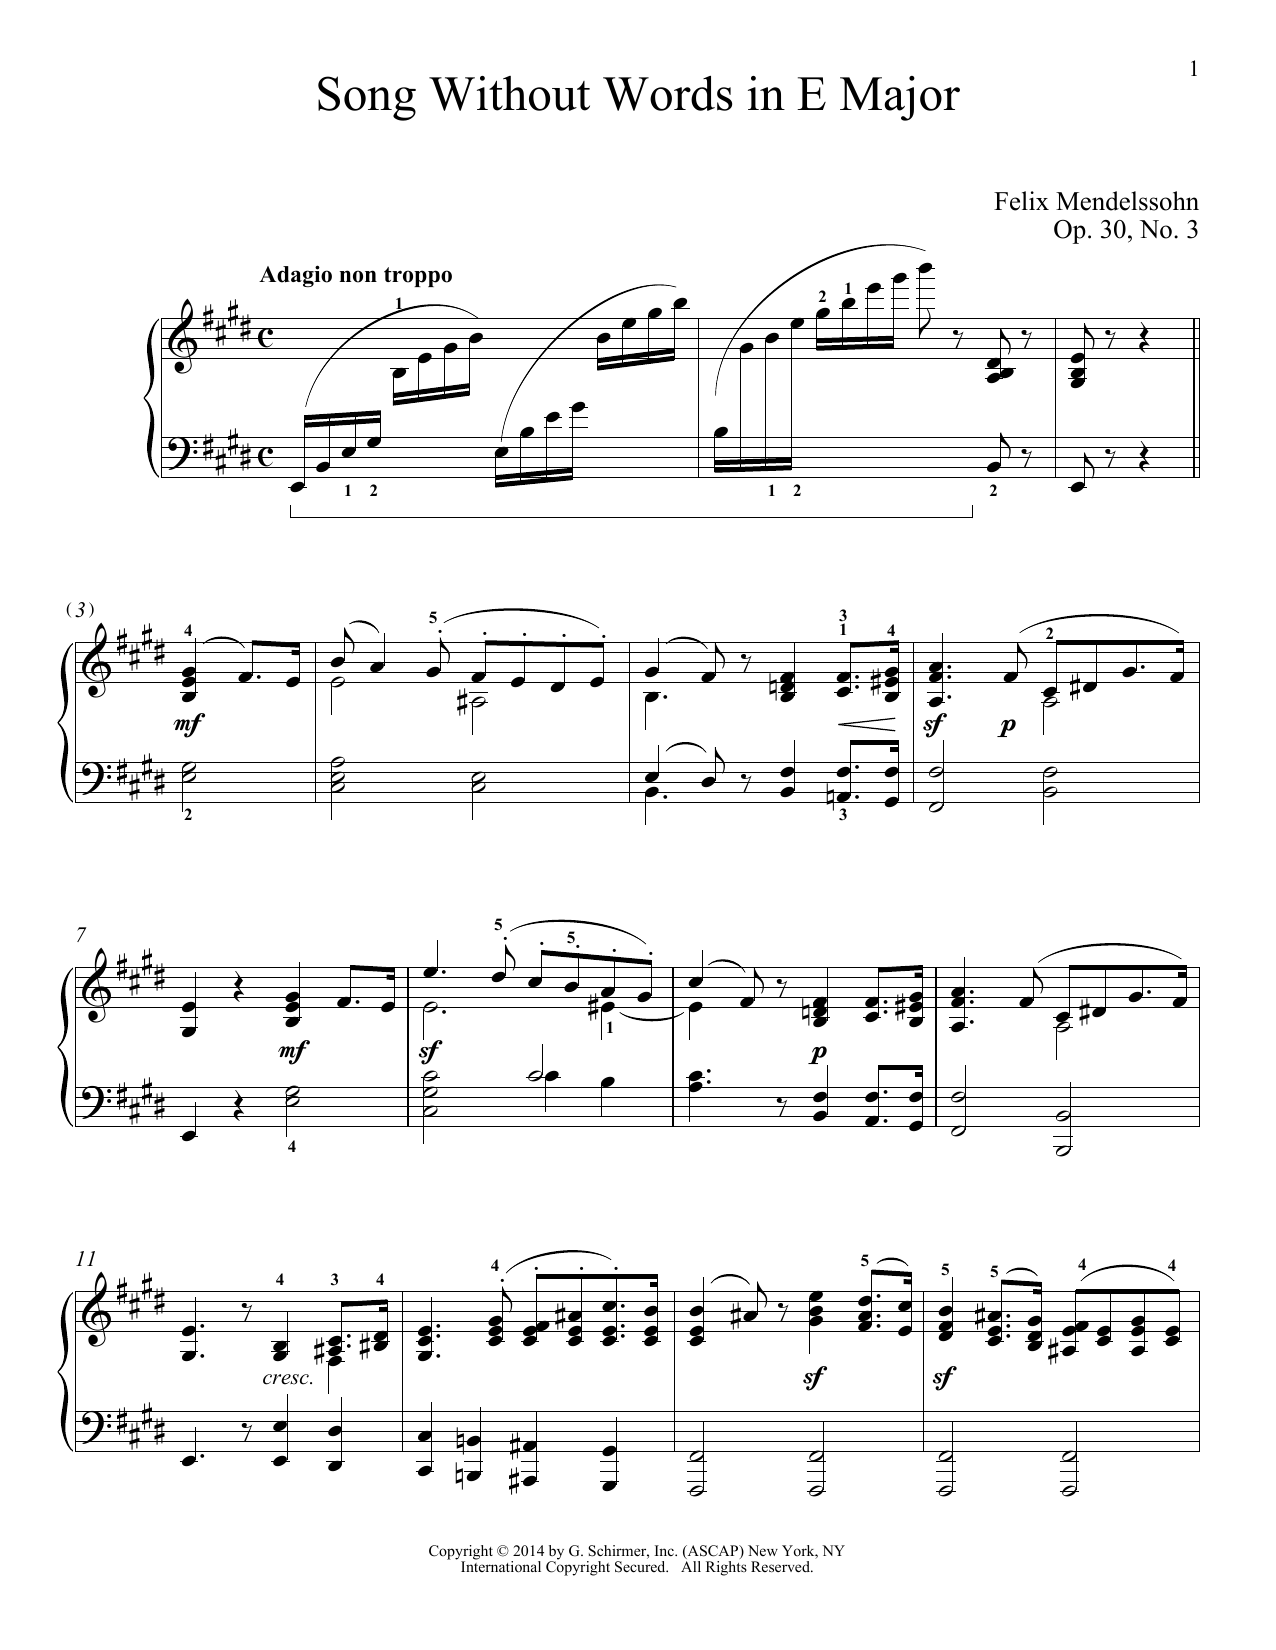 Song Without Words In E Major, Op. 30, No. 3 Sheet Music